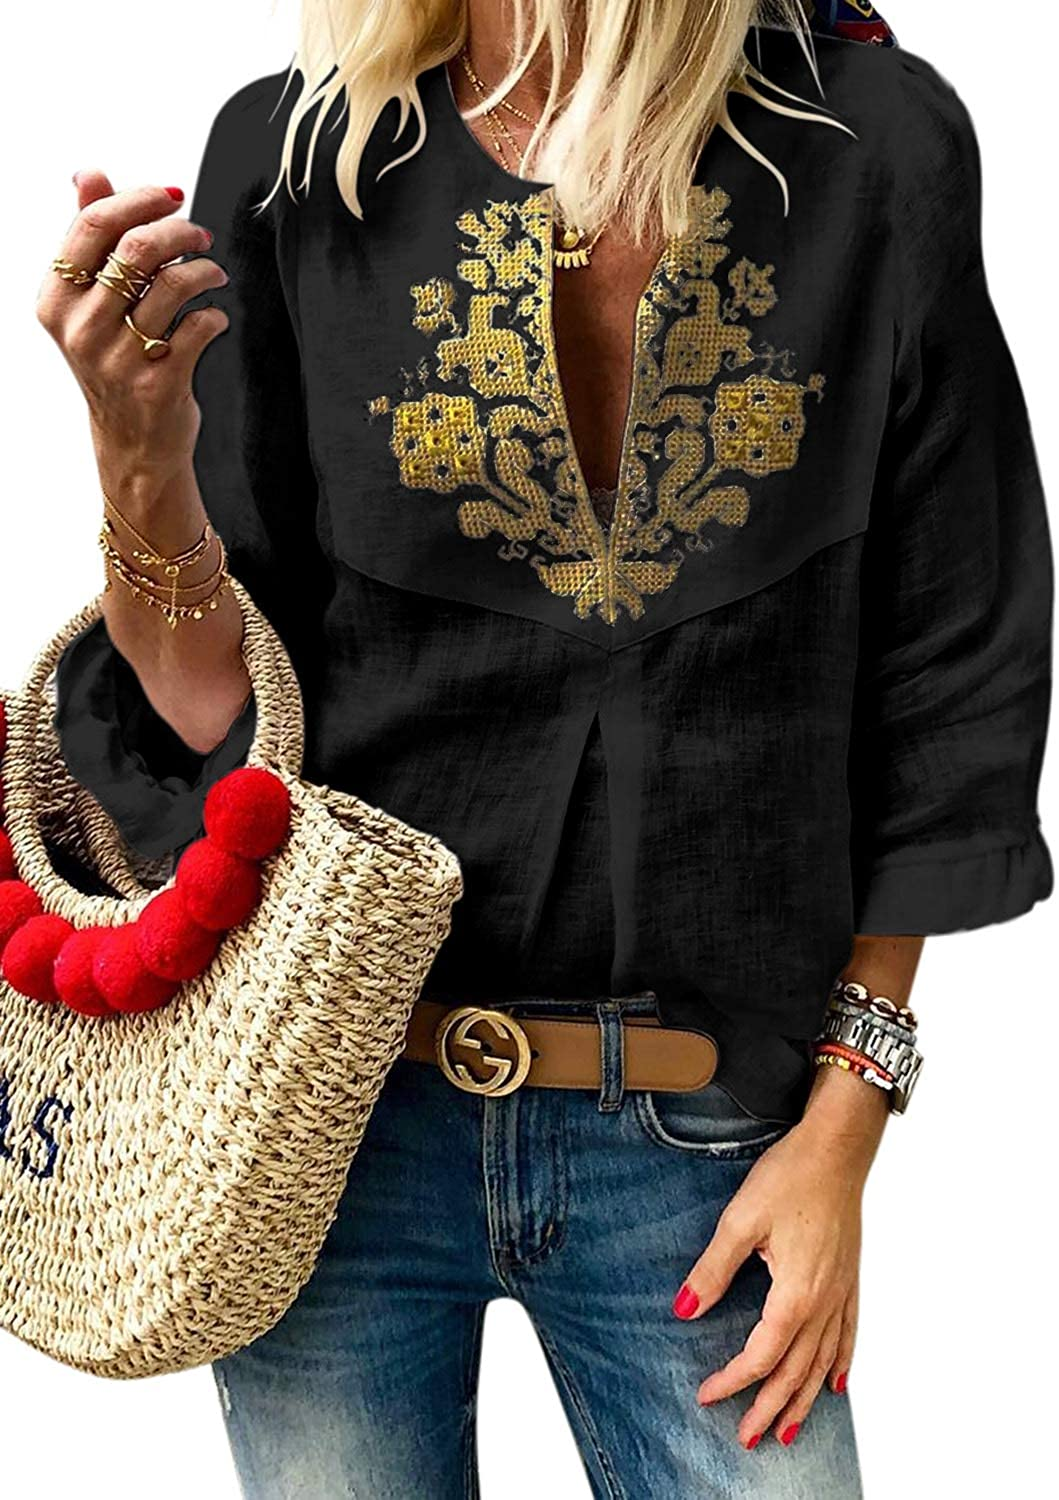 LOSRLY Women Floral Print T-Shirt High Neck Casual Blouse Sleeveless Tank Tops